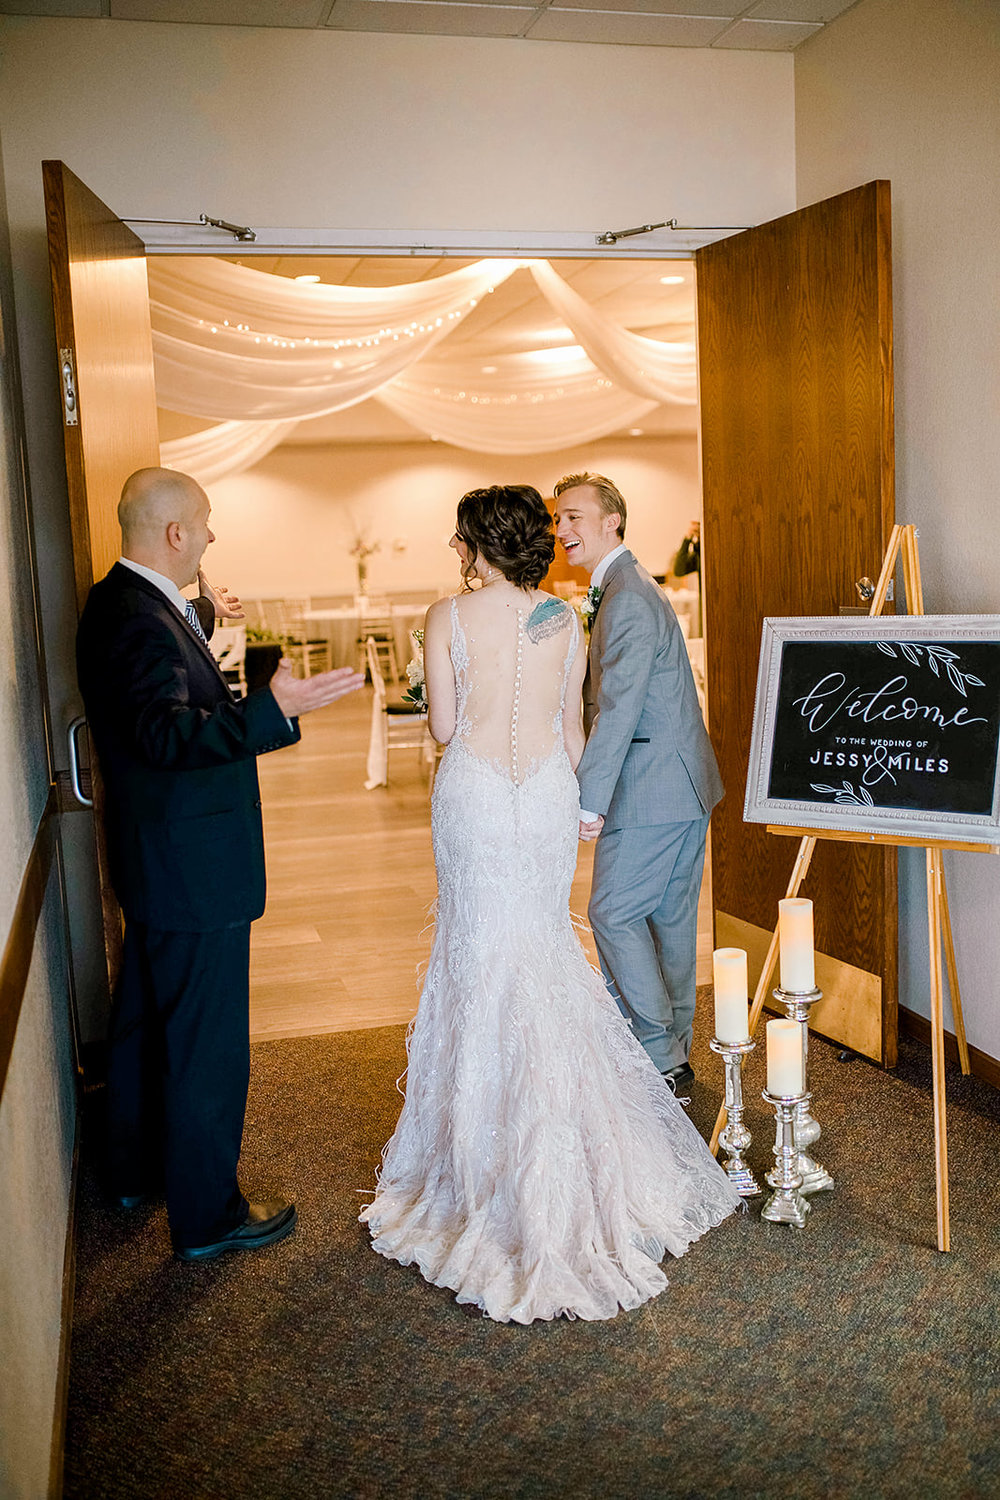 George Maverick officiant and door holder, just what your wedding needs for a stress free grand entrance in to the ballroom